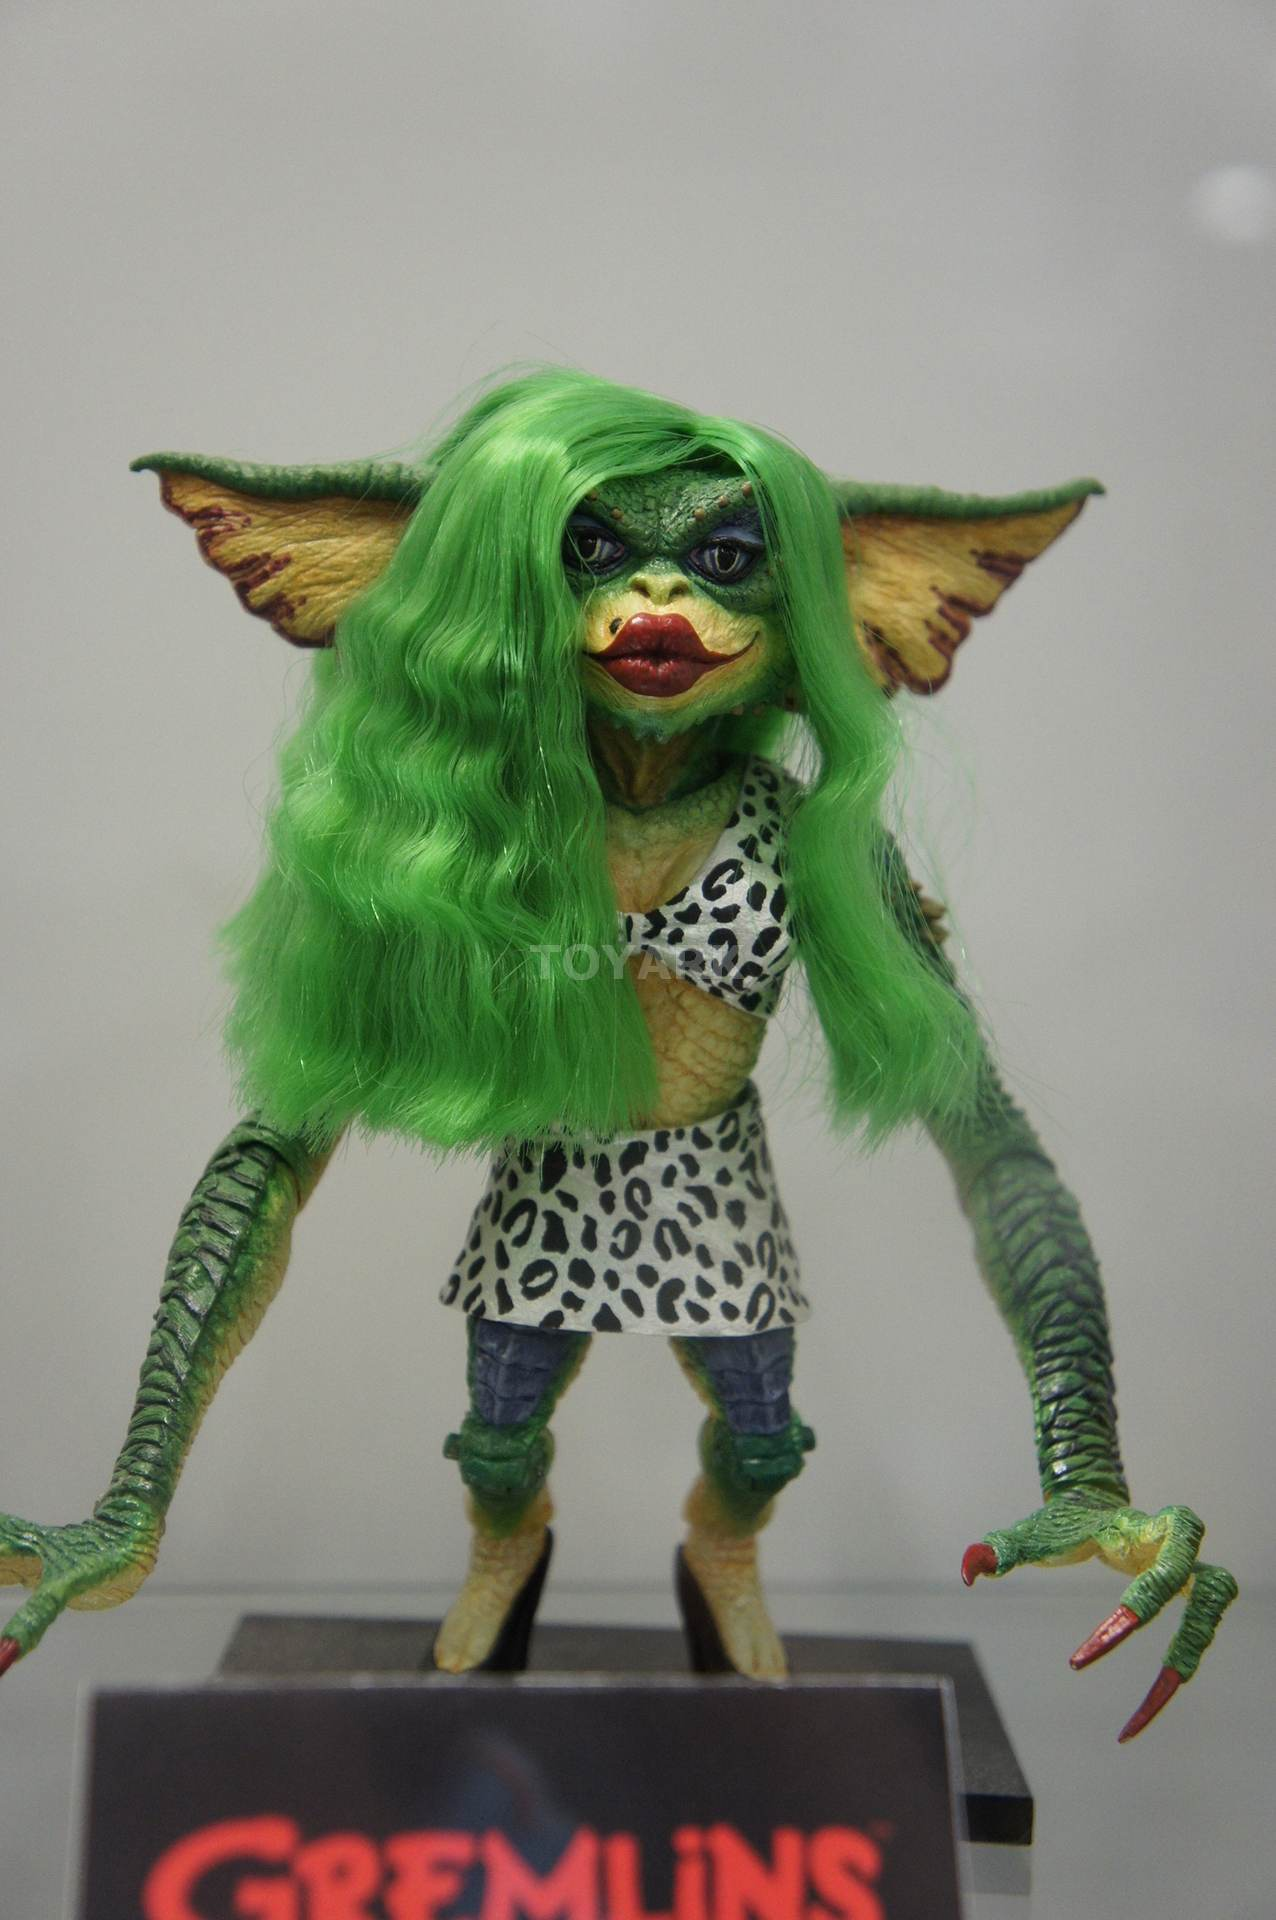 http://news.toyark.com/wp-content/uploads/sites/4/2016/01/NECA-Gremlins-Series-3-Unreleased-002.jpg